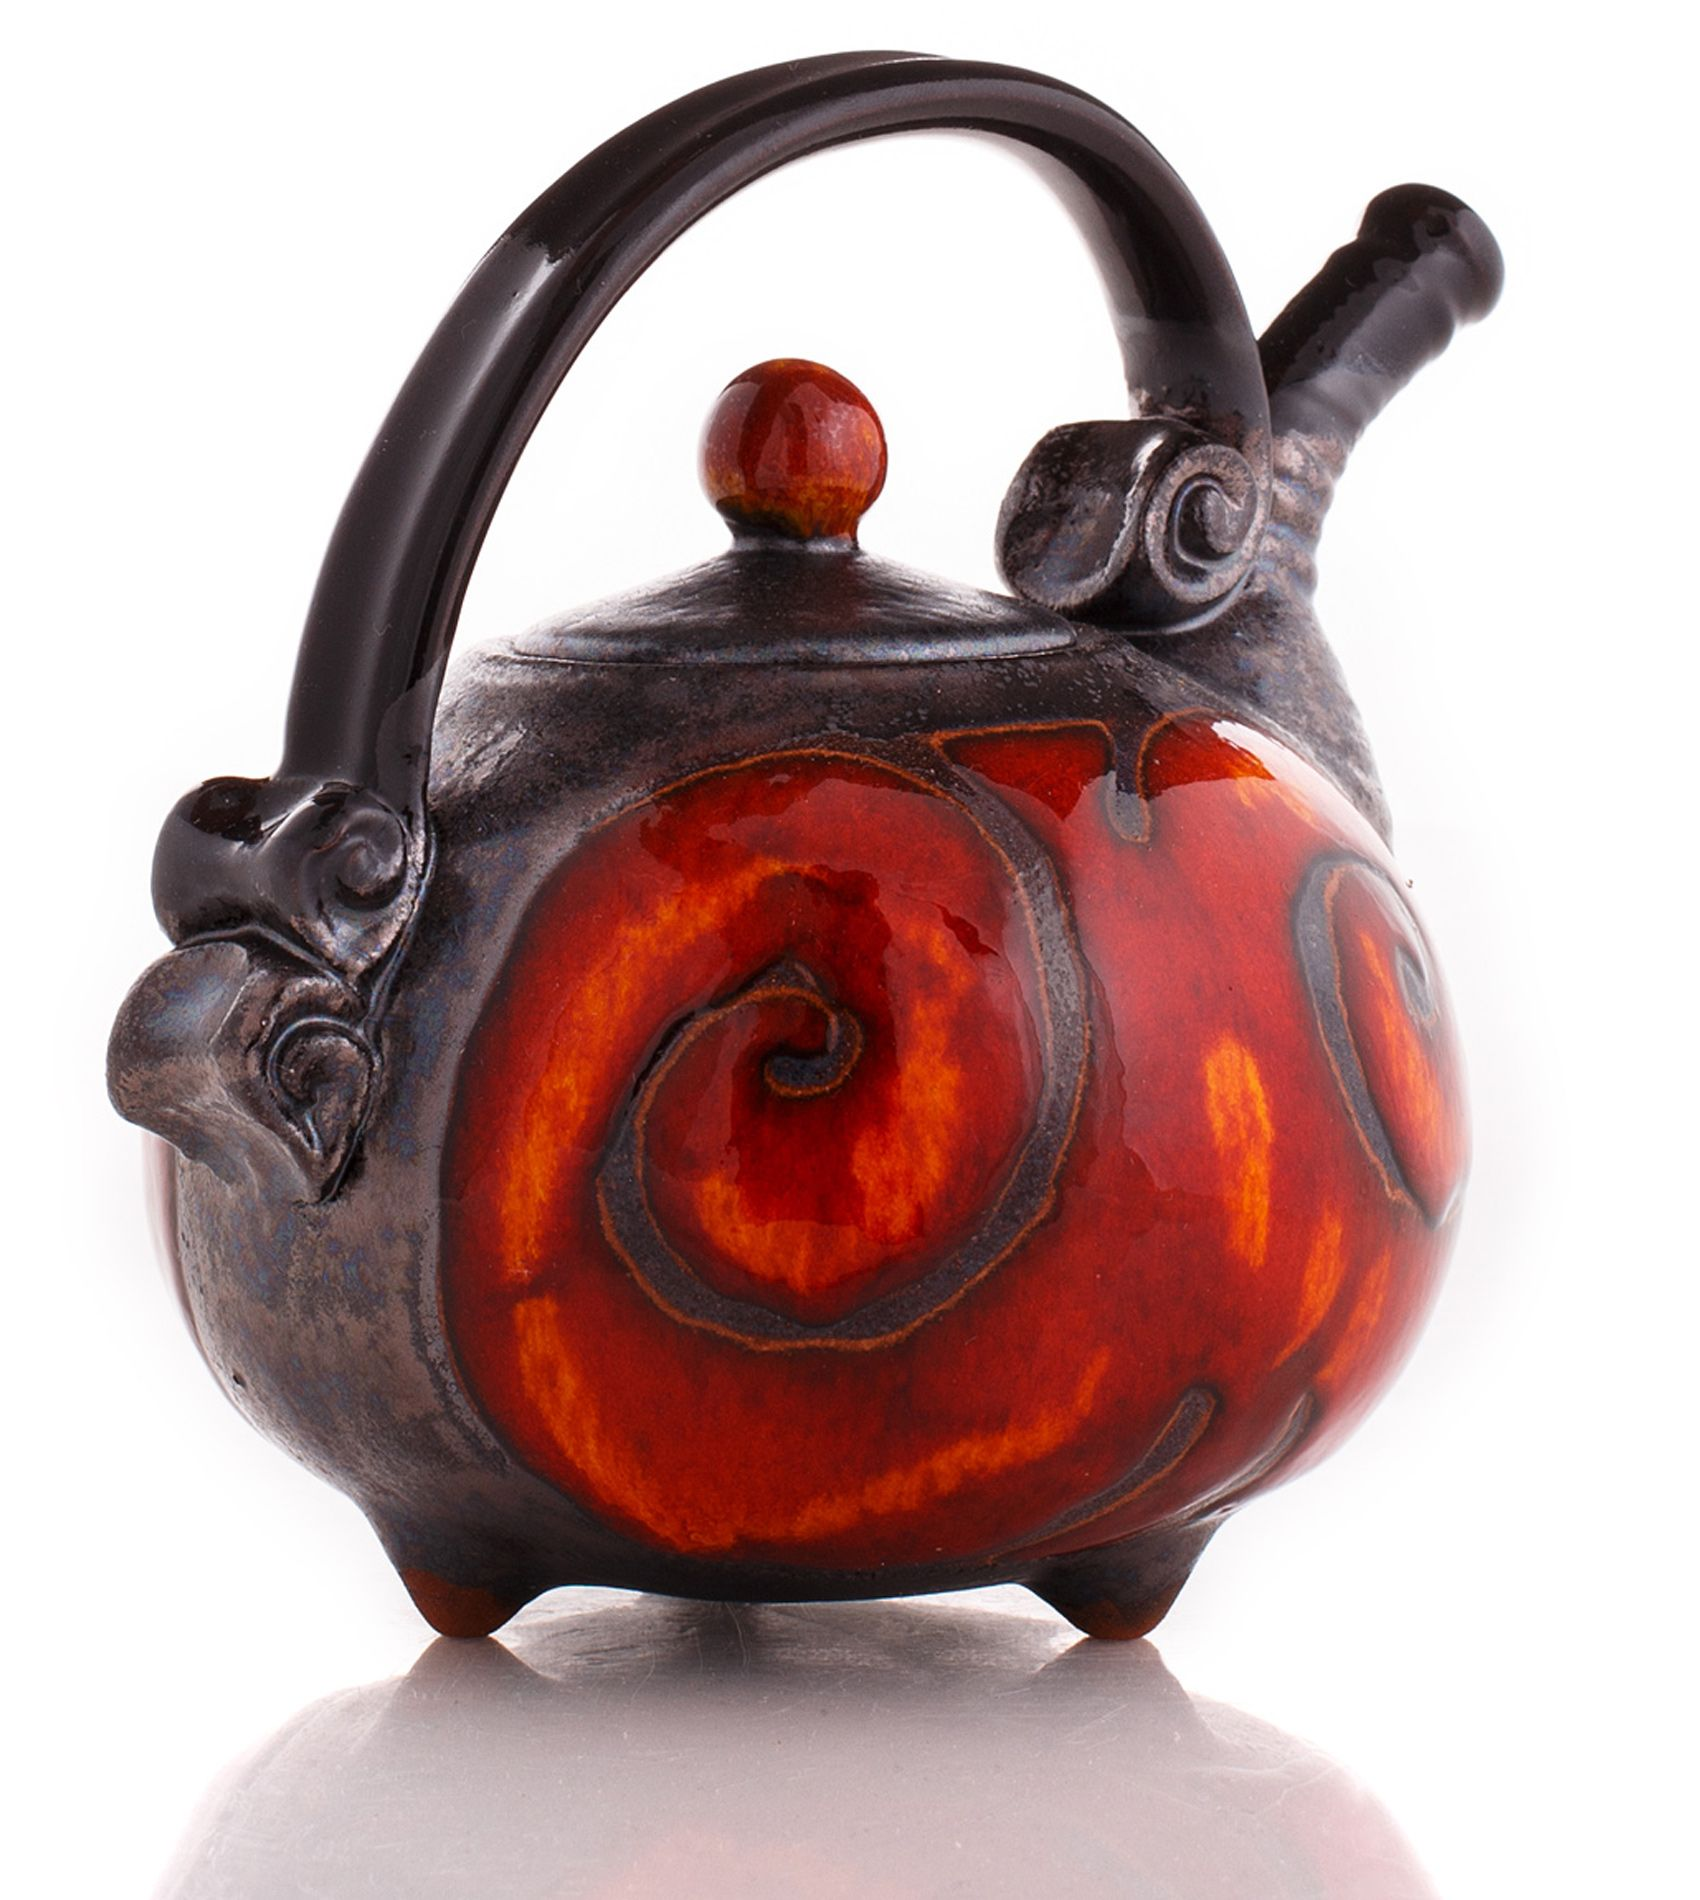 This charming mini teapot (19 oz ) is great for two. Its bold colors and strong contrast add a dramatic touch to every occasion.